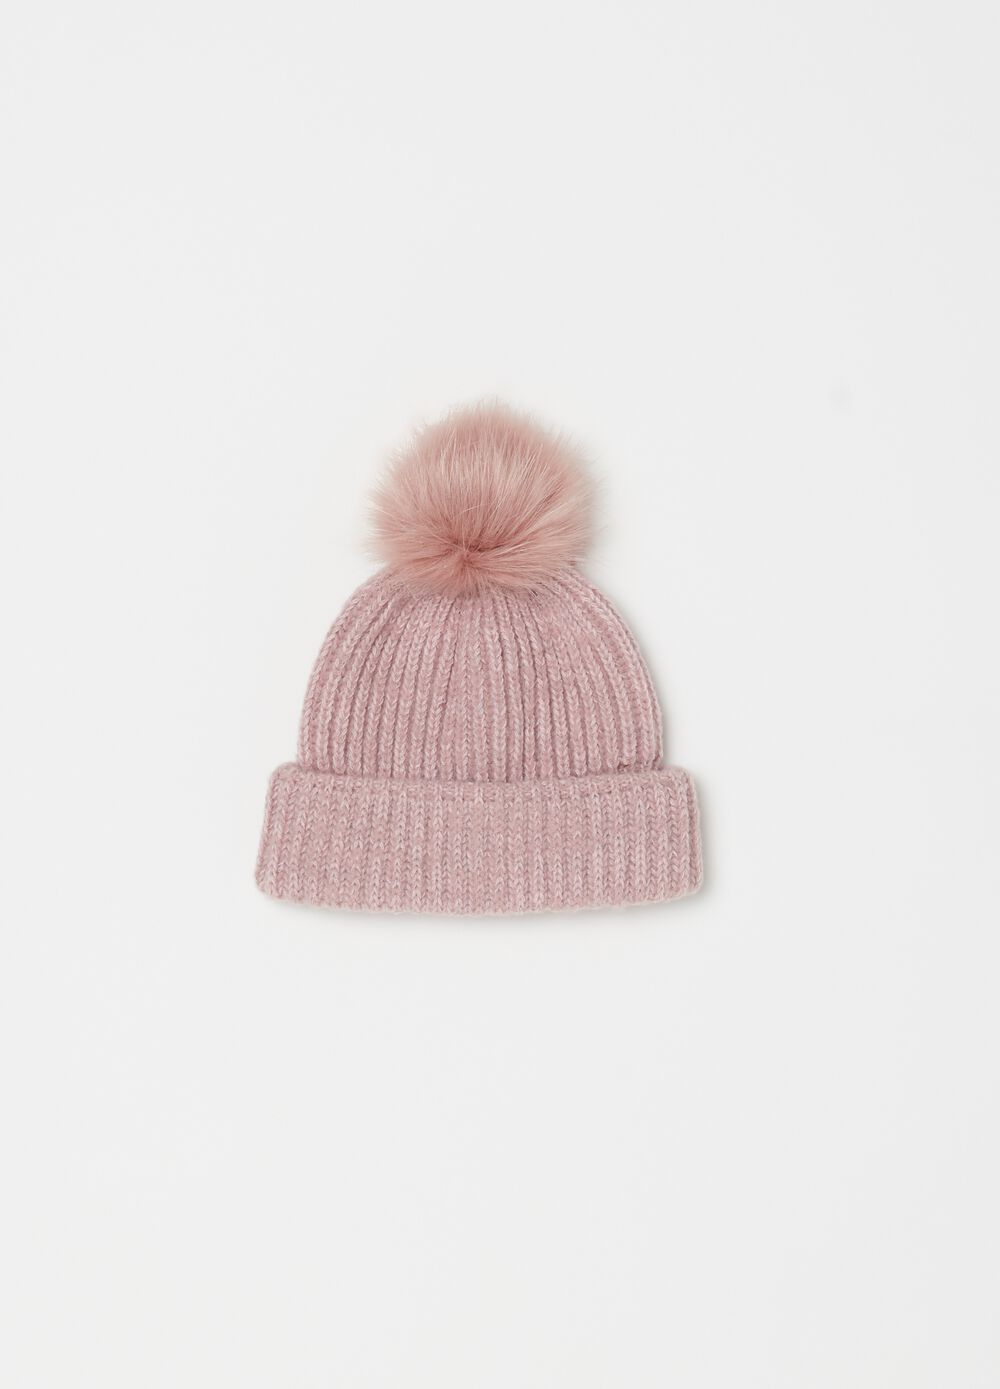 Maxi knitted hat with pompom